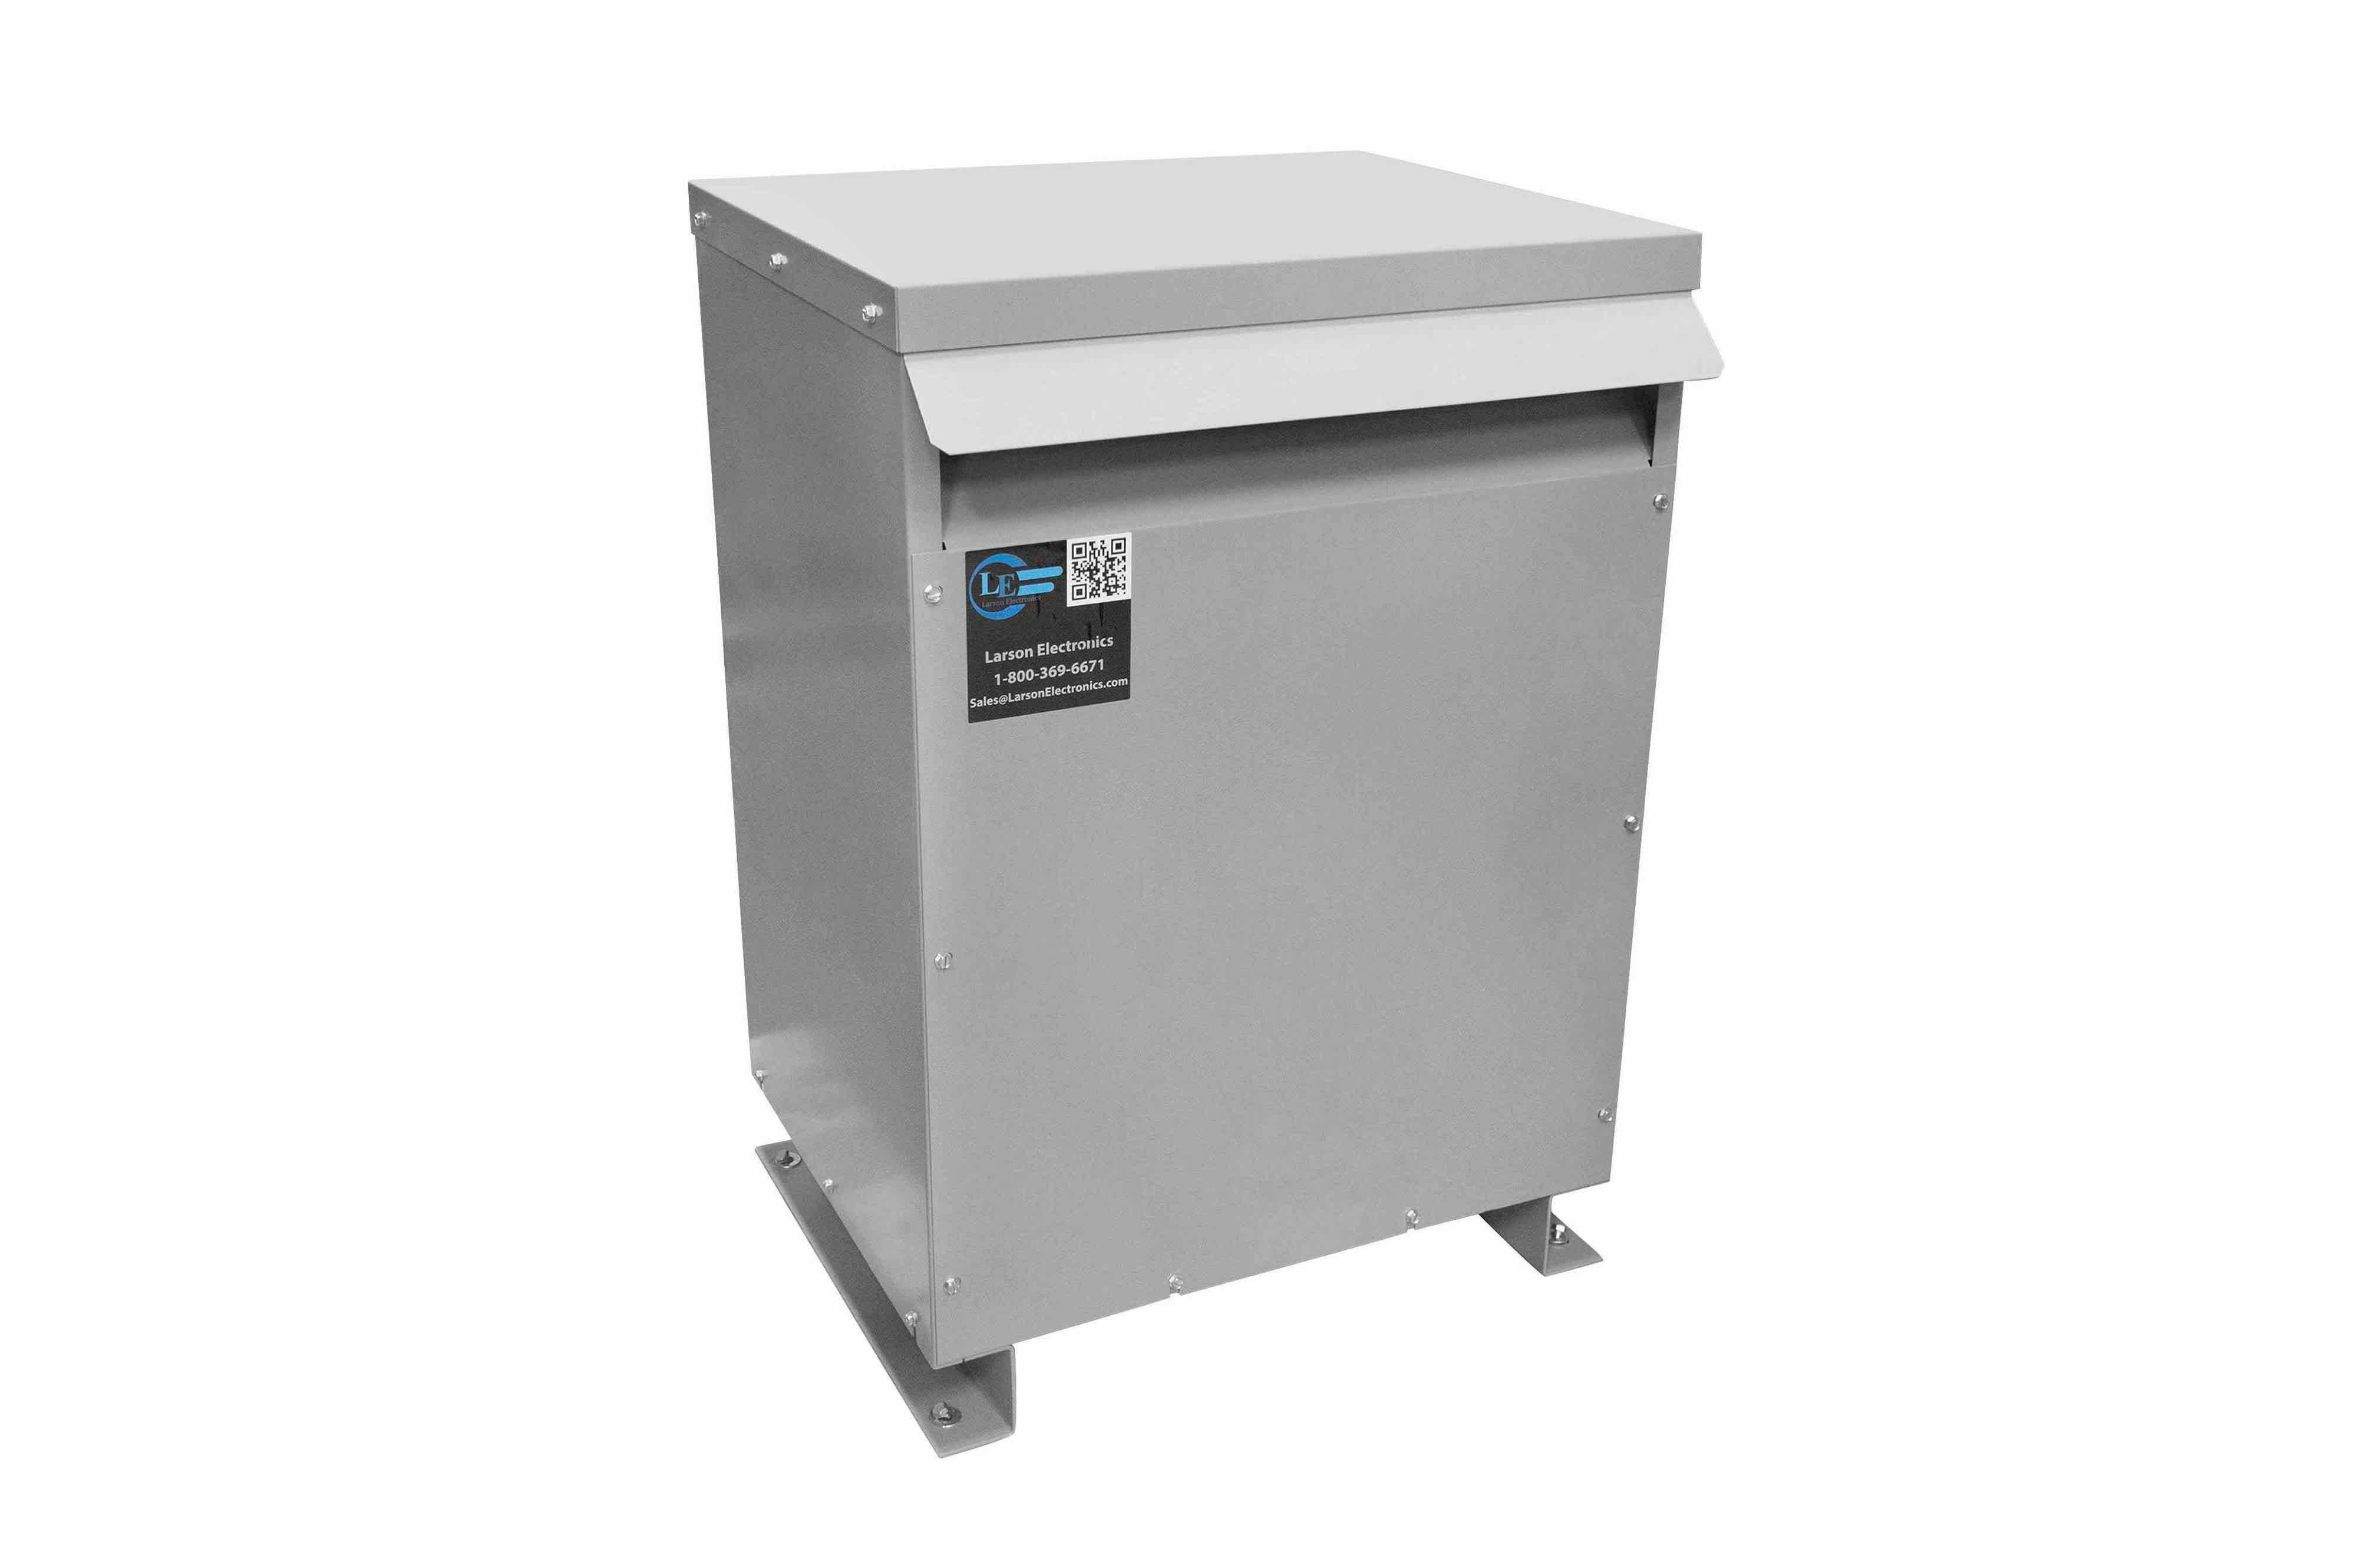 55 kVA 3PH Isolation Transformer, 600V Wye Primary, 480Y/277 Wye-N Secondary, N3R, Ventilated, 60 Hz